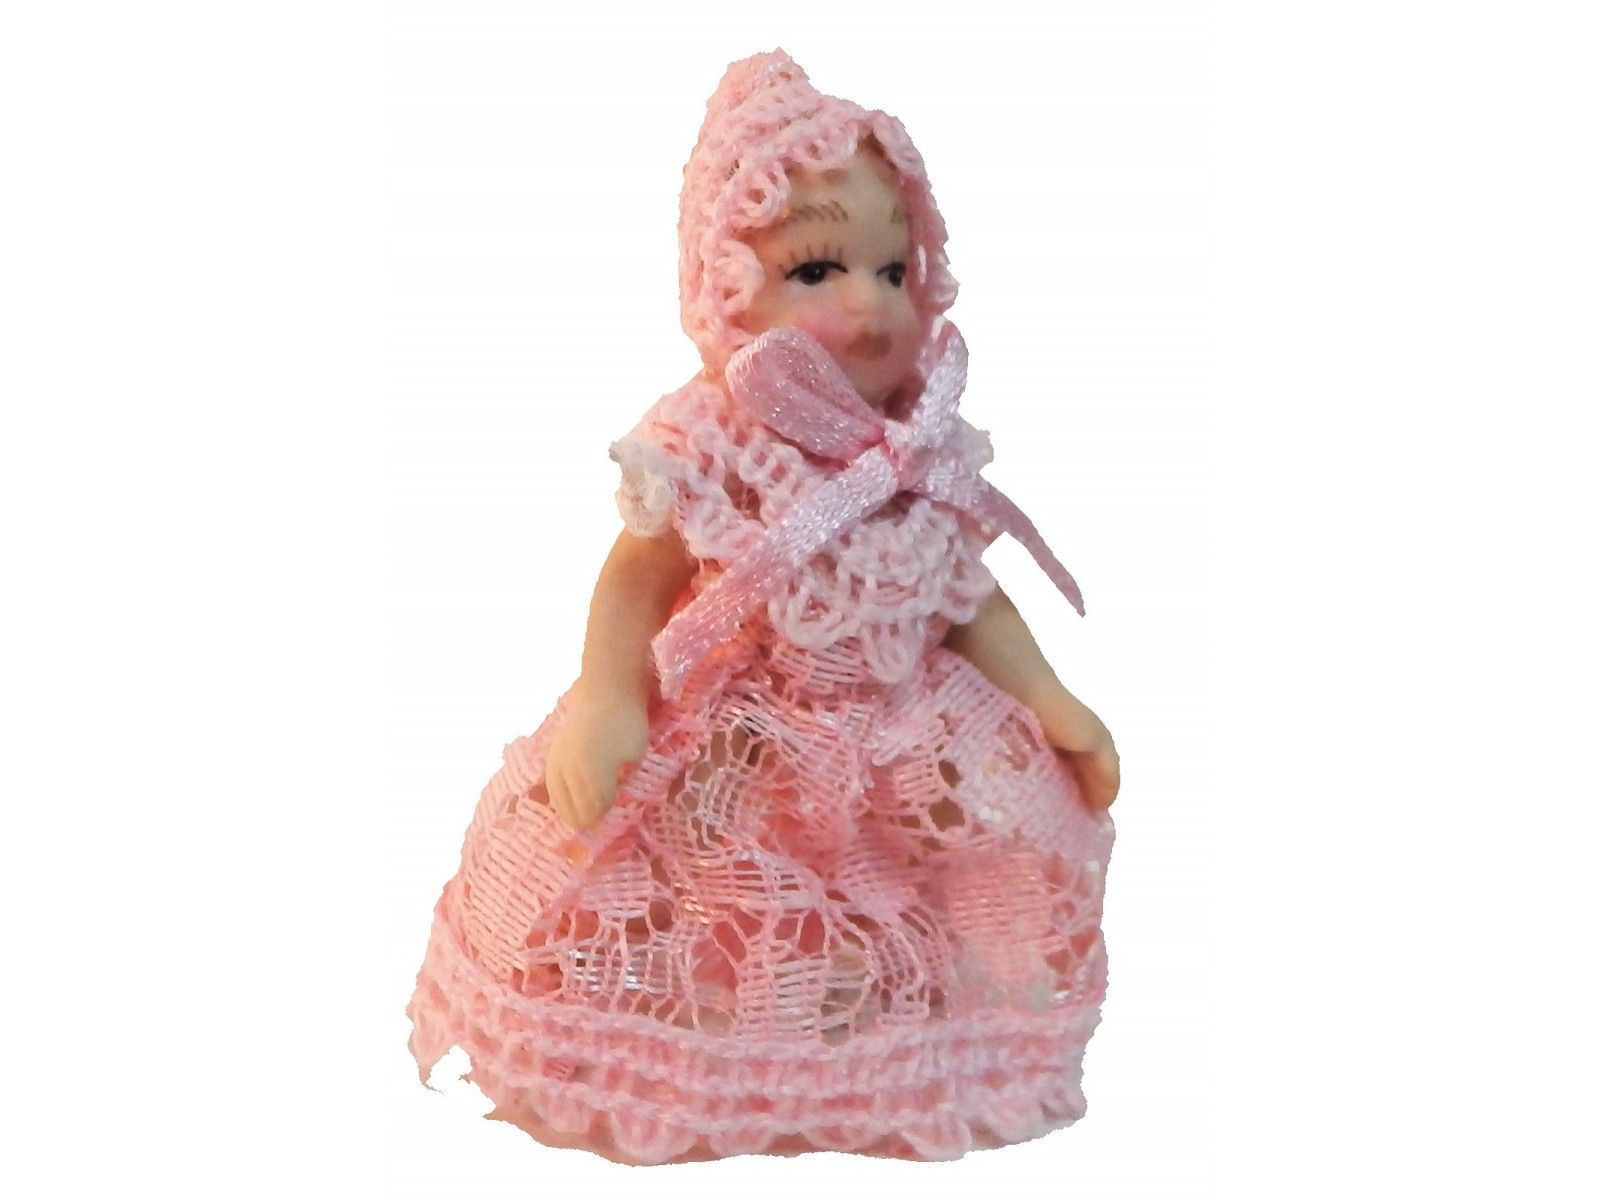 1//12 Porcelain Baby Doll in Lace Dress Dolhouse Miniature People Figurines